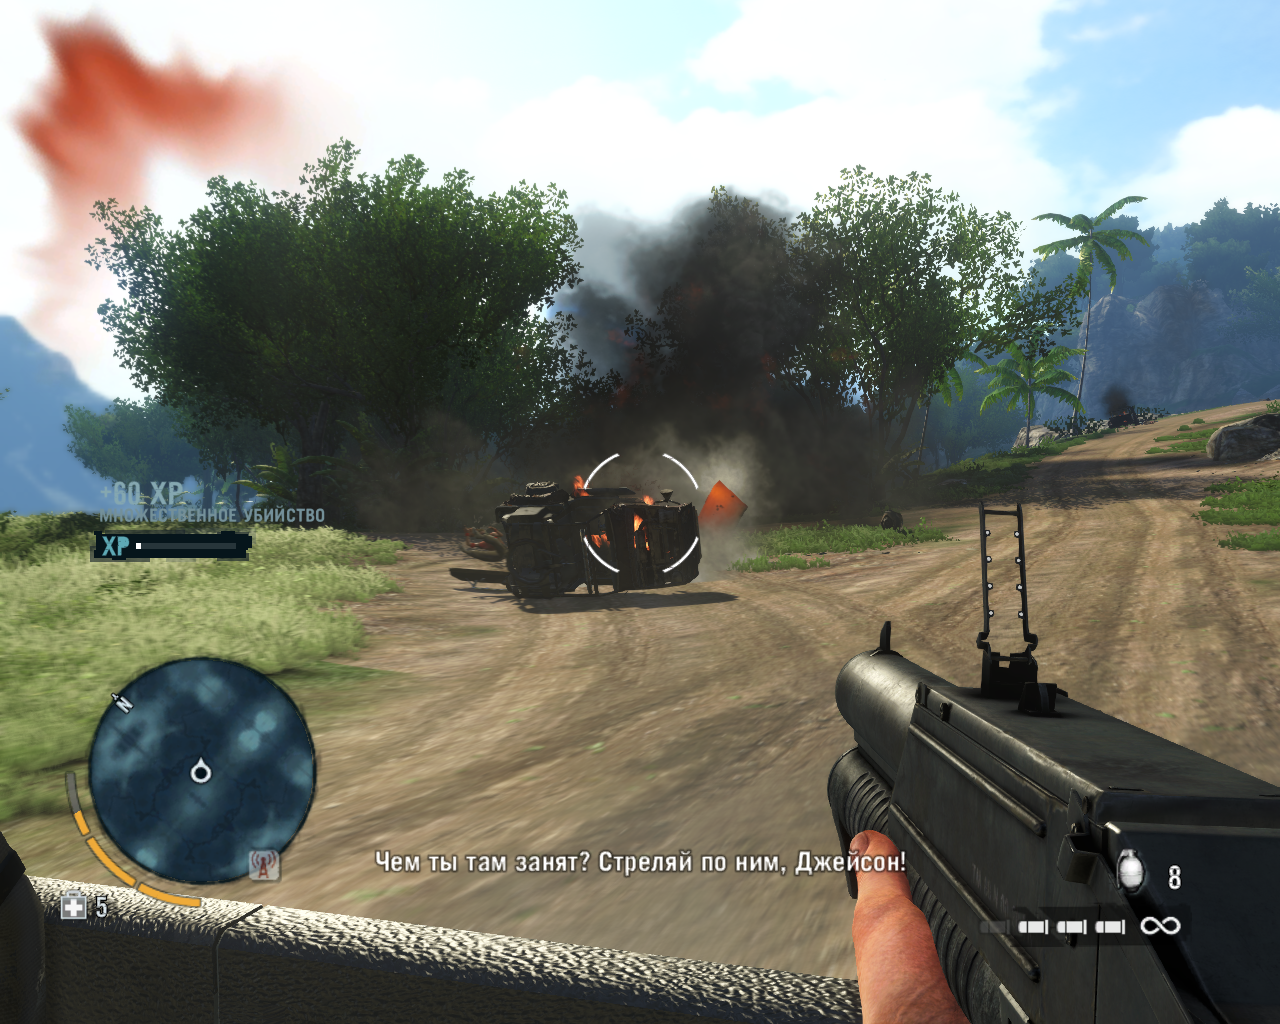 Far Cry 3 Windows Just blown up a car full of pirate pursuers